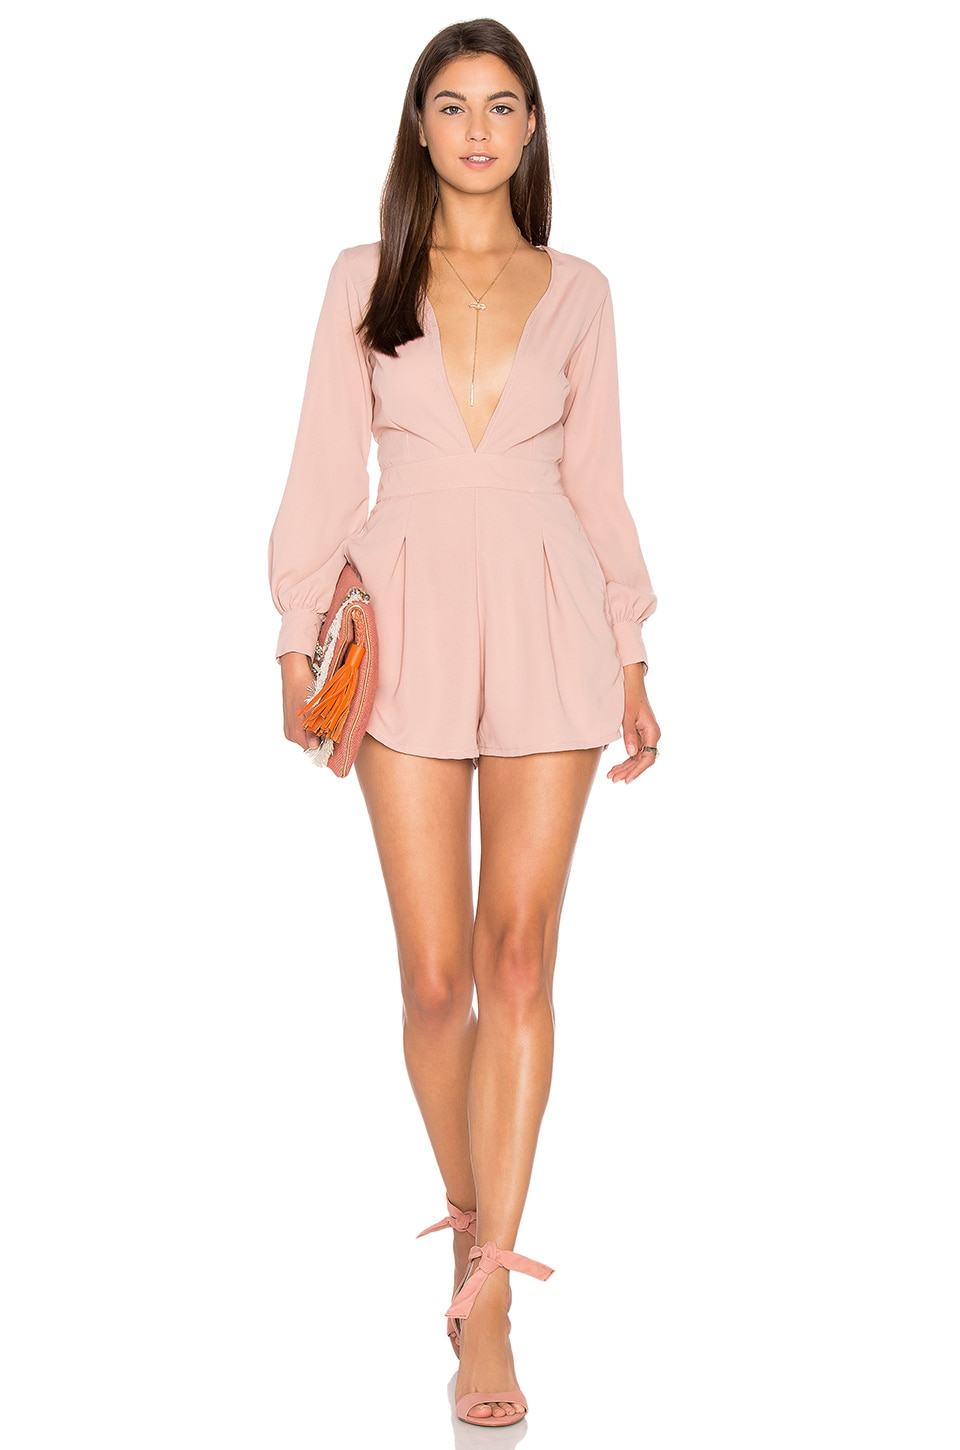 Motel Millicent Romper in Blush